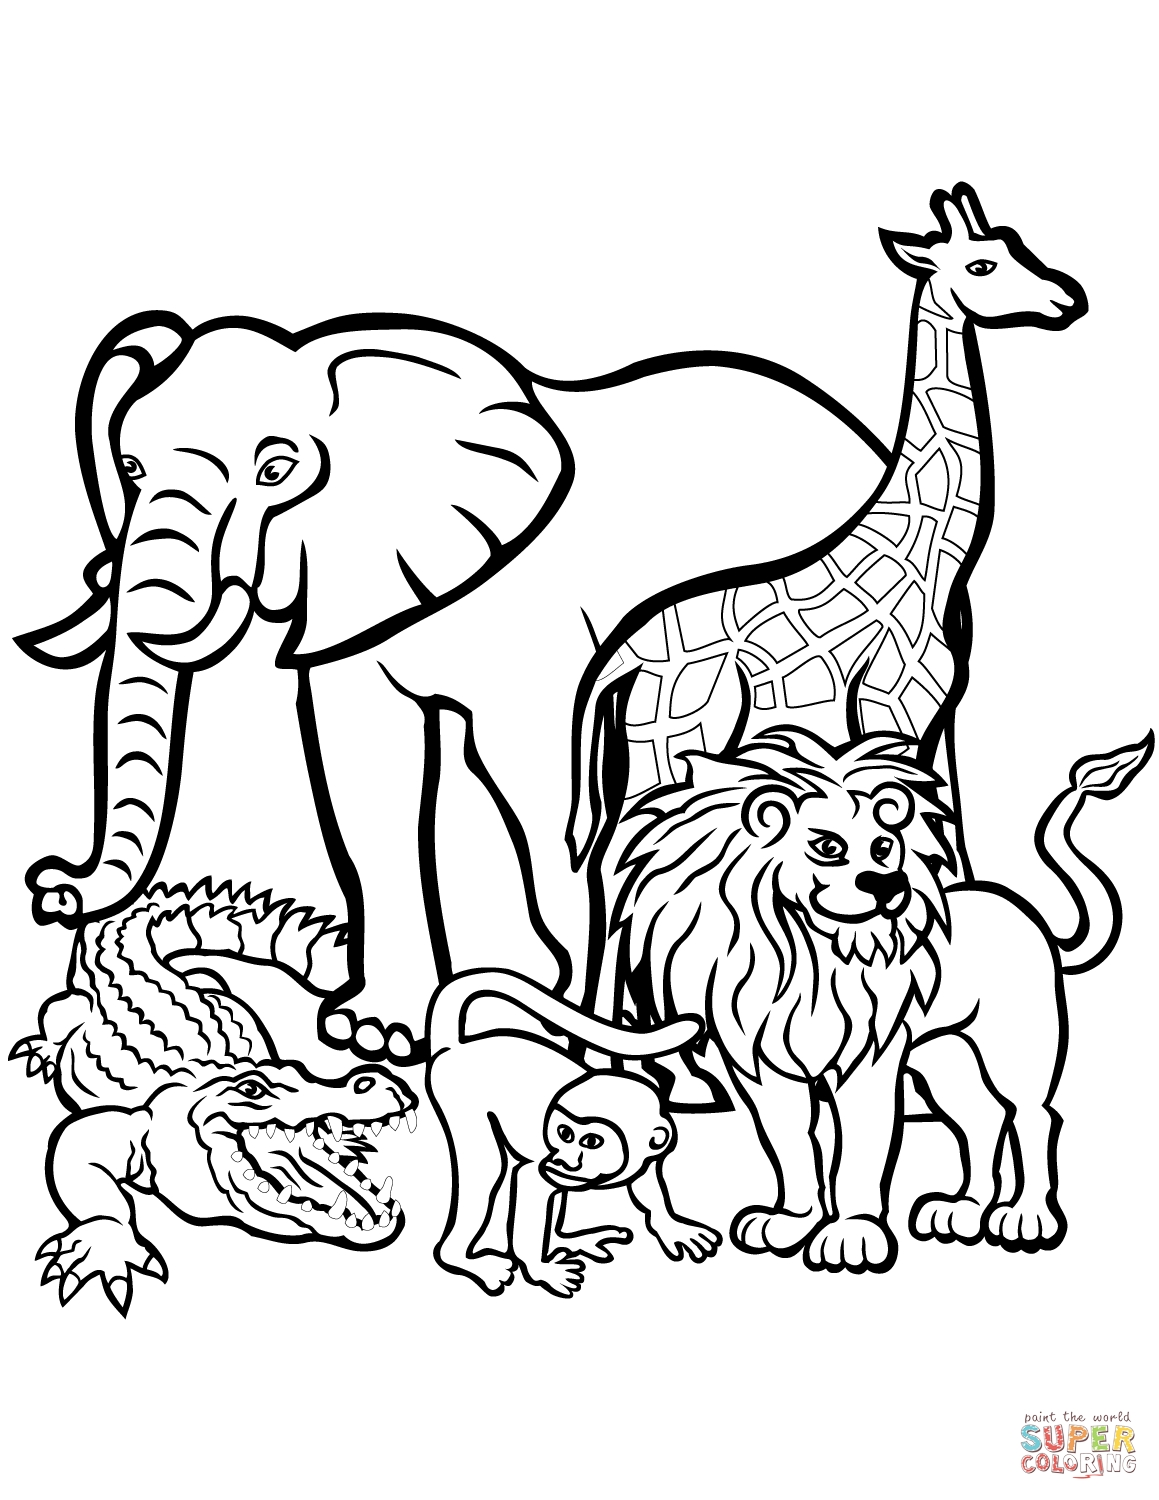 zoo coloring picture free printable zoo coloring pages for kids picture coloring zoo 1 1